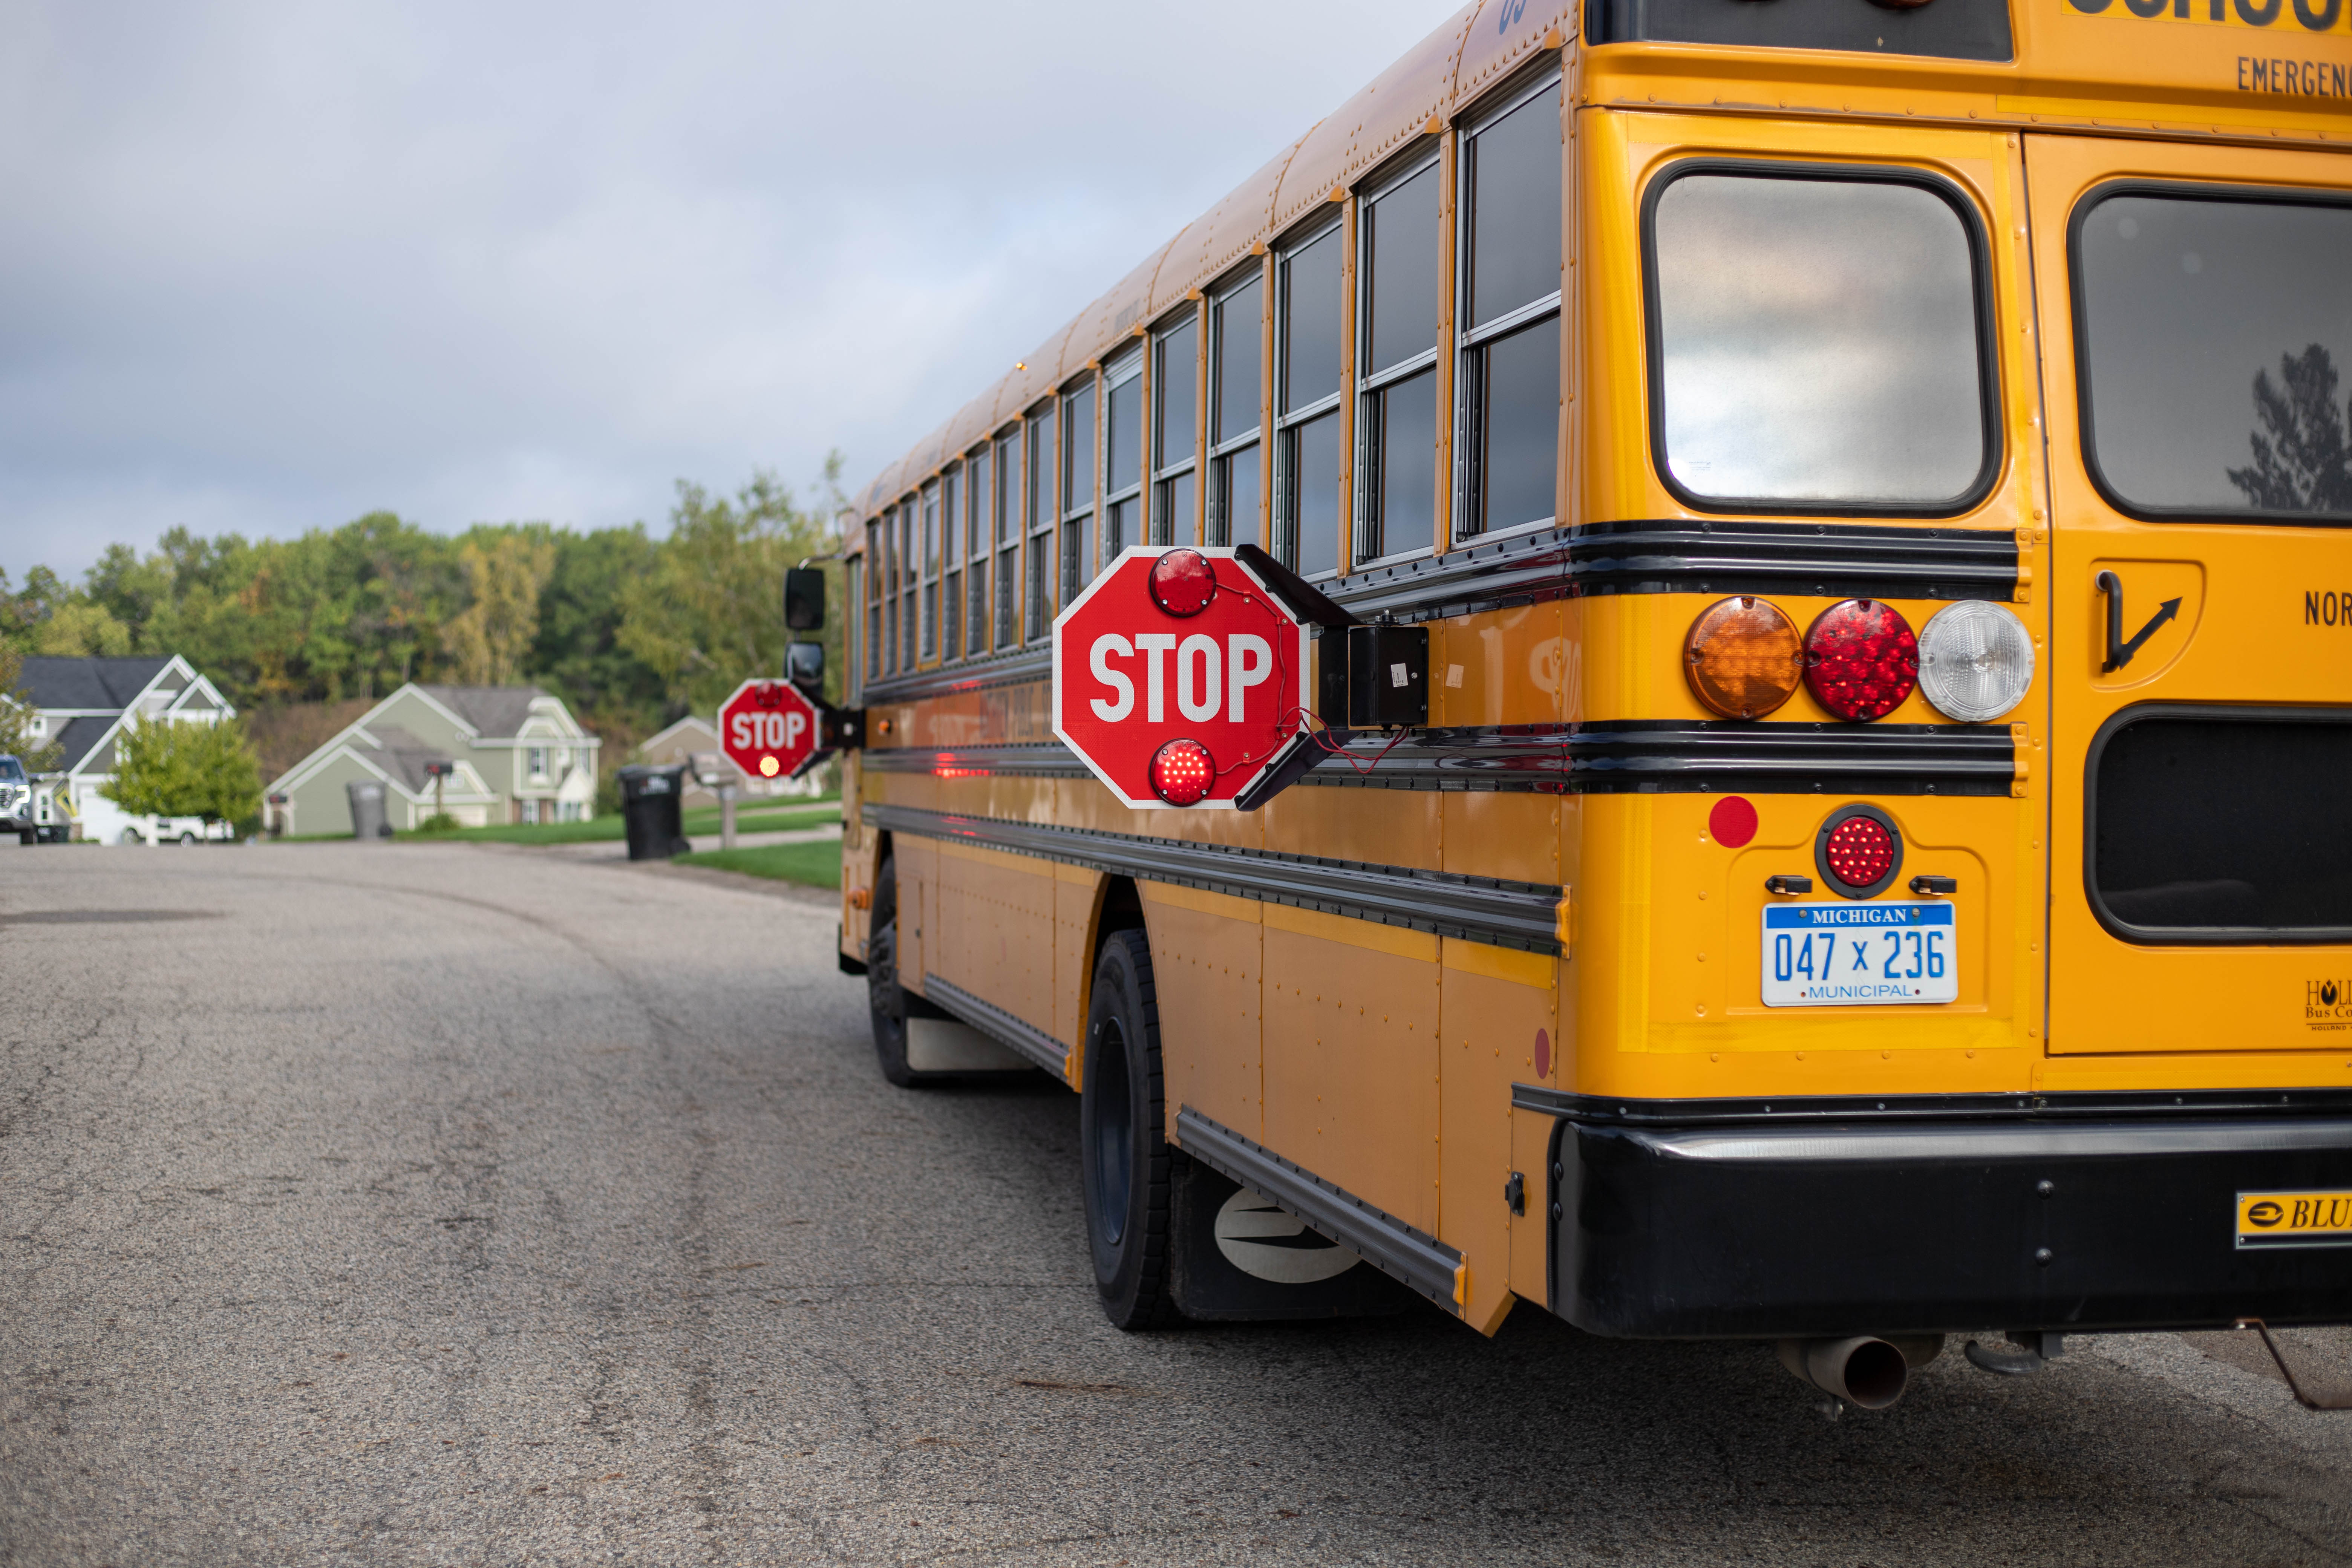 KCSO Participates in National School Bus Safety Campaign, Operation Safe Stop